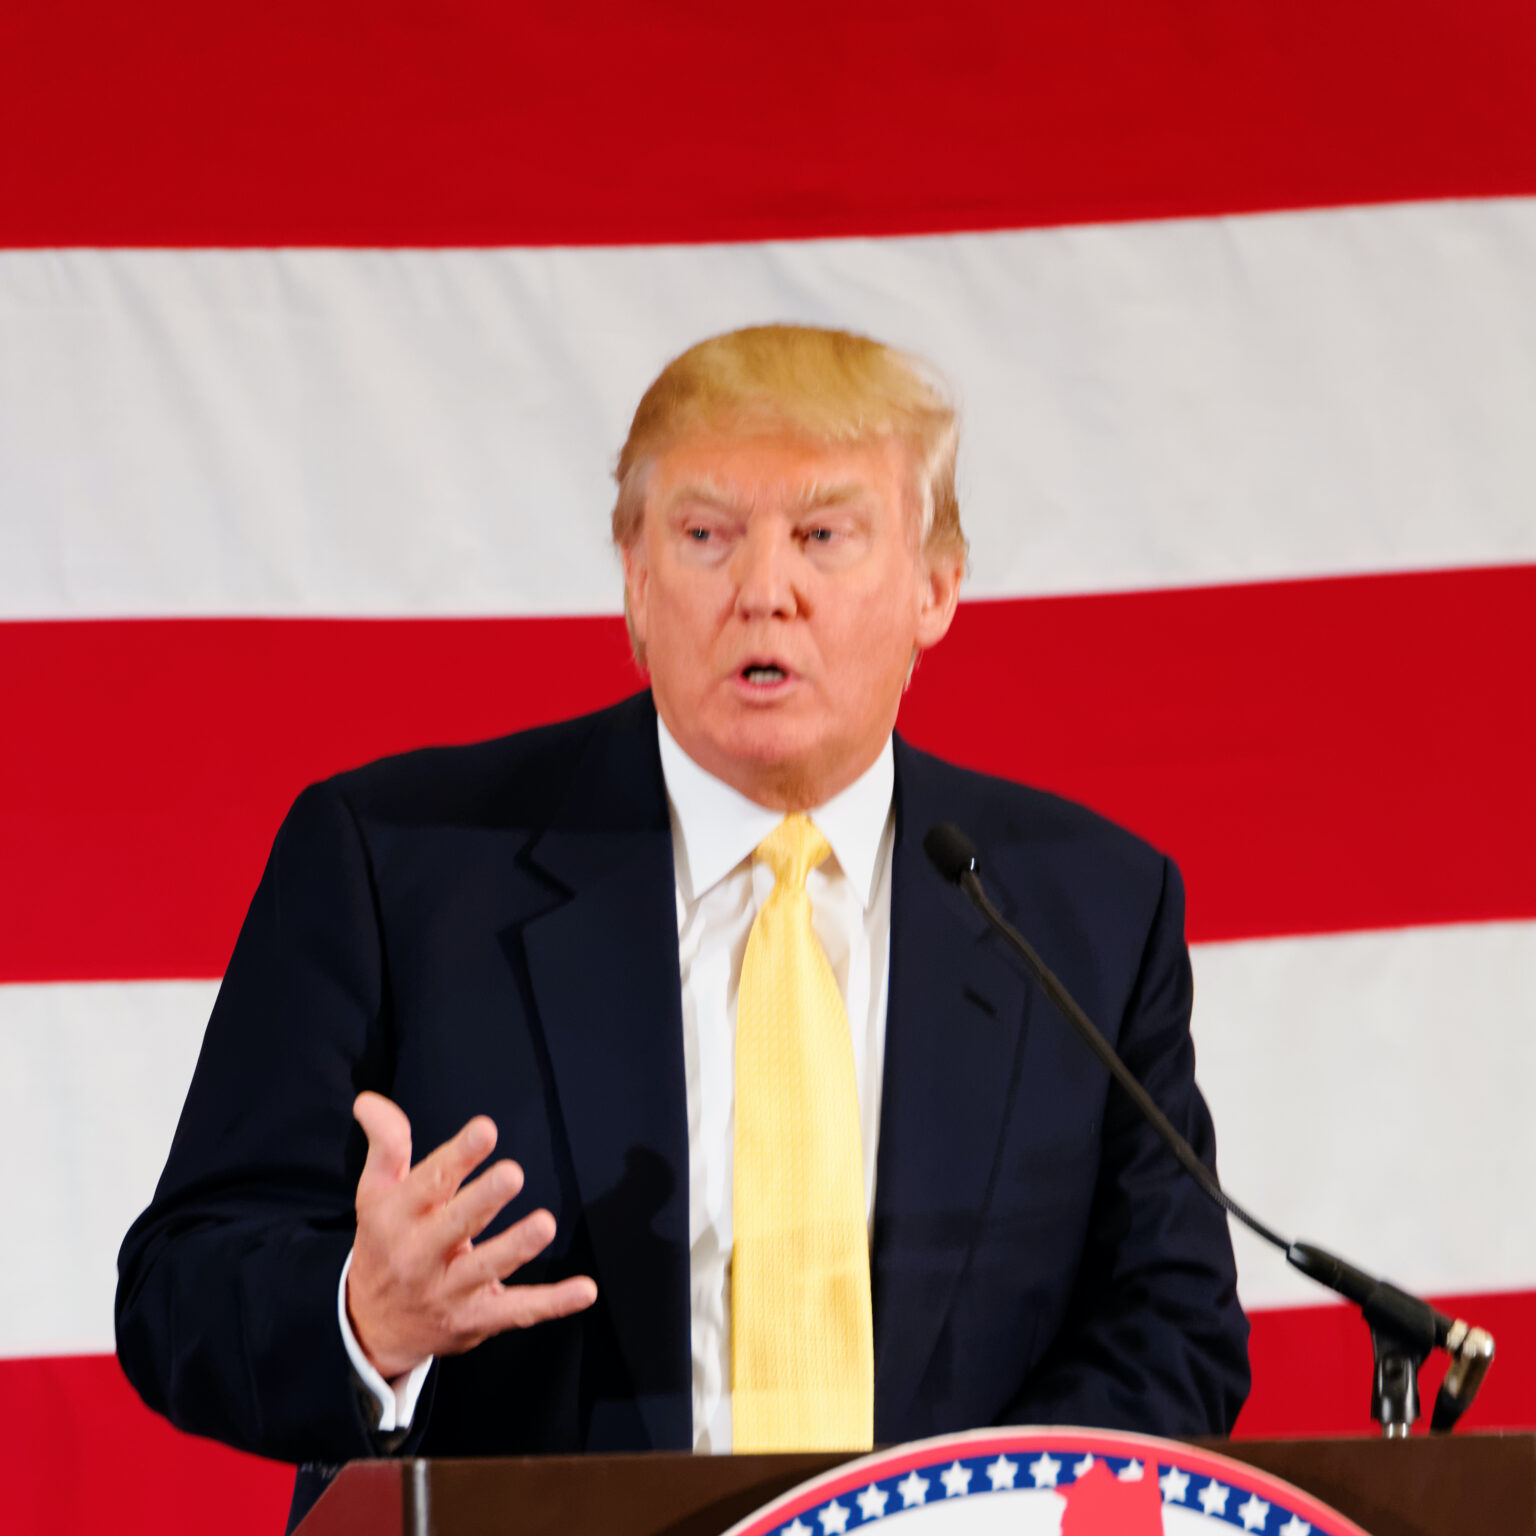 """""""Donald Trump Sr. at #FITN in Nashua, NH"""" by Michael Vadon is licensed under CC BY-SA 2.0"""